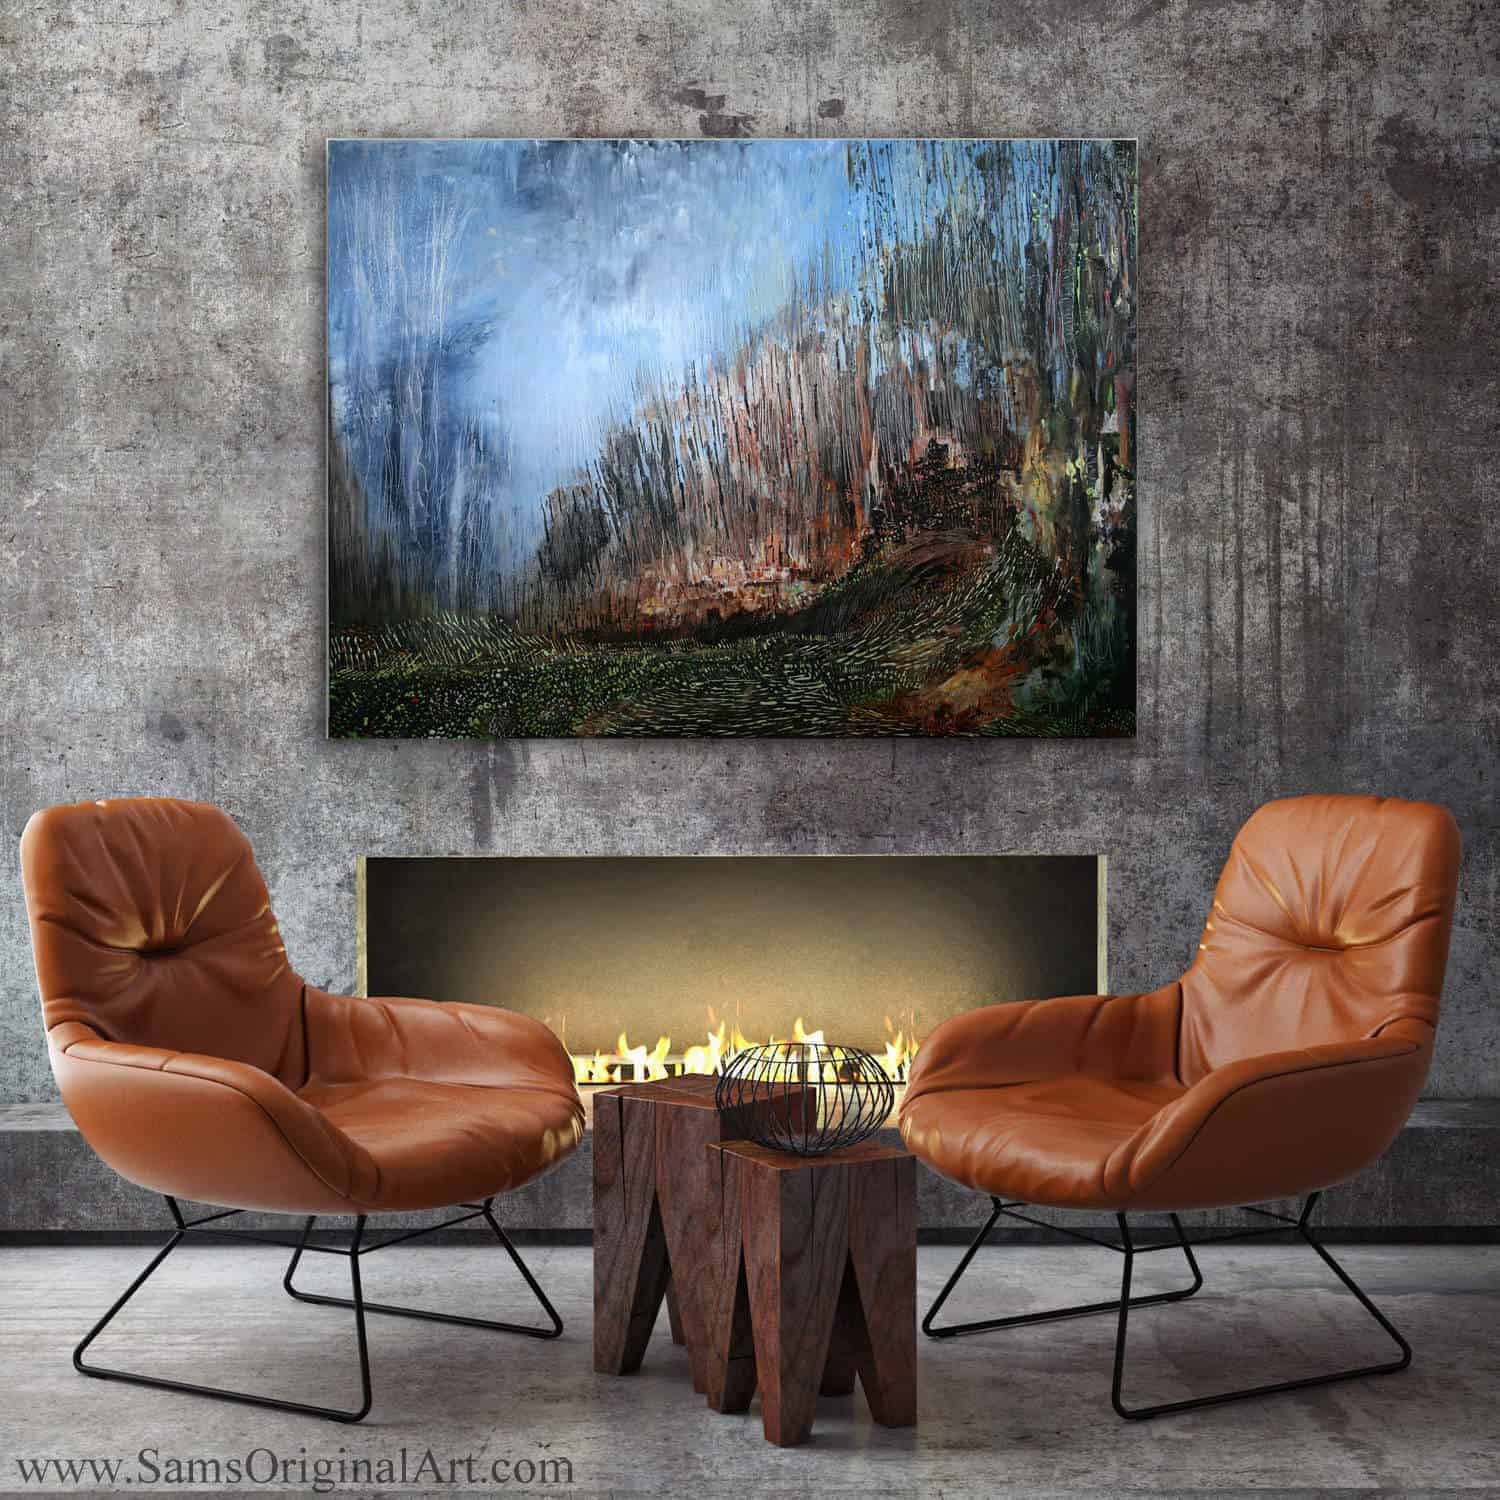 Giclee Wall Print Over Fireplace Title: Zephyr